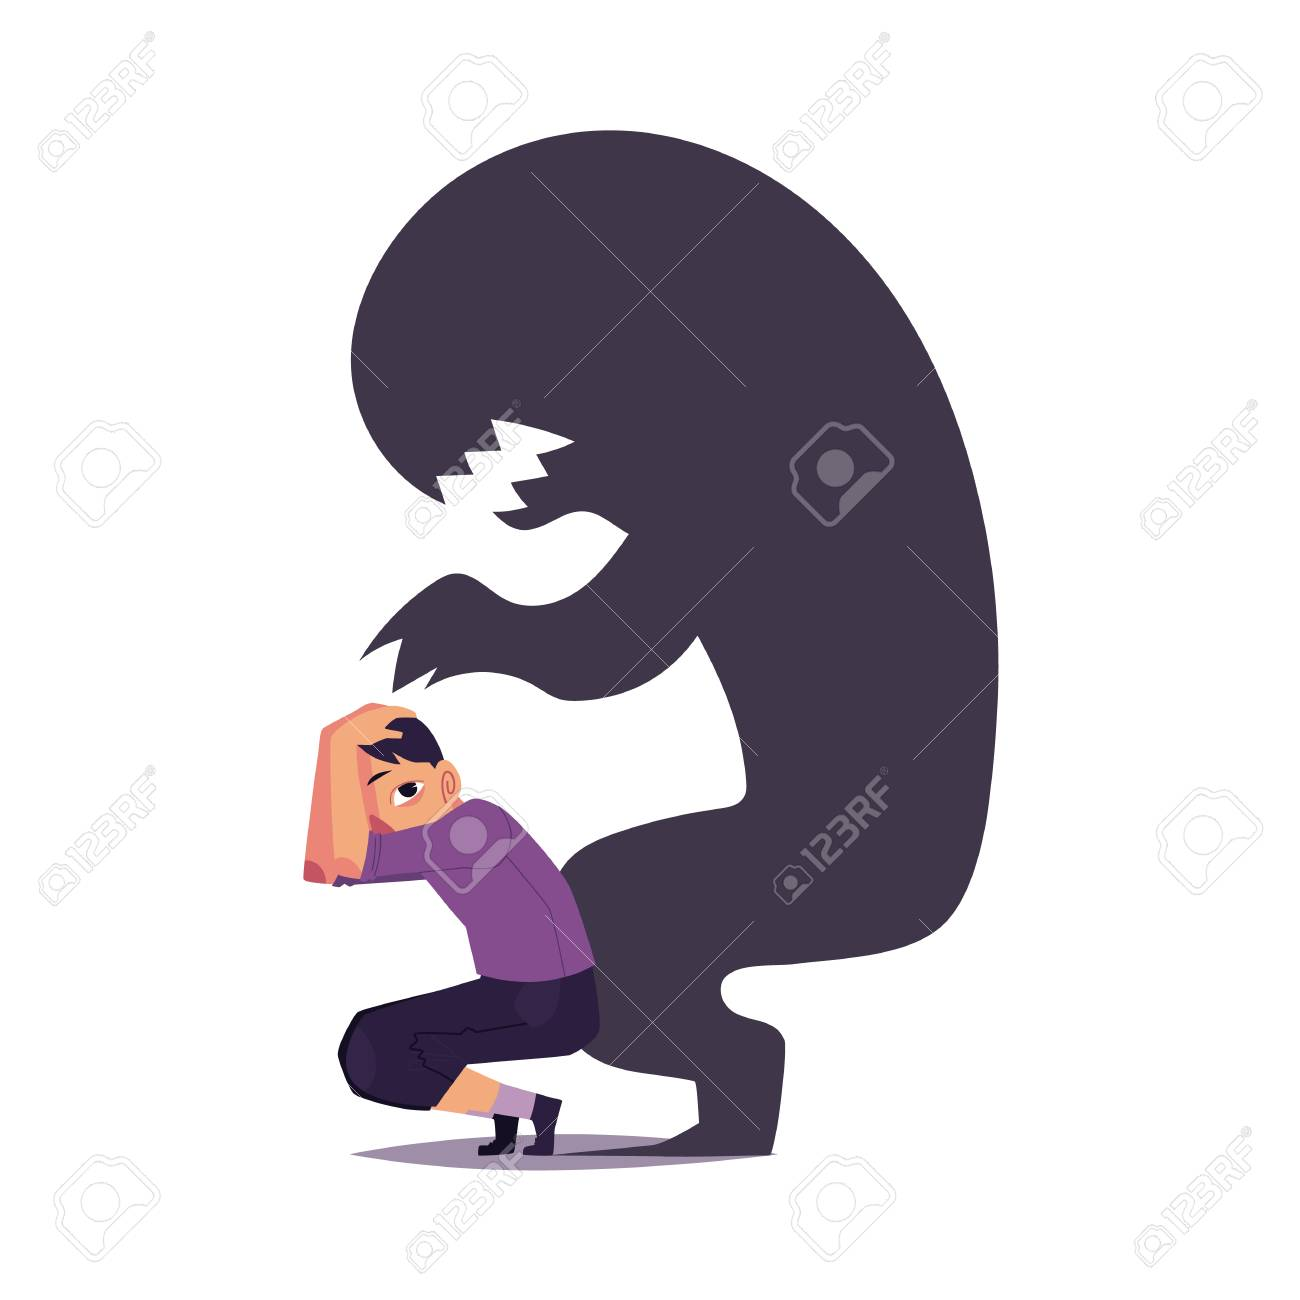 Fear, phobia shown as scary black monster shadow hanging over frightened man, cartoon vector illustration isolated on white background. Concept of mental disorder, phobia, fear as black monster shadow. - 93751793